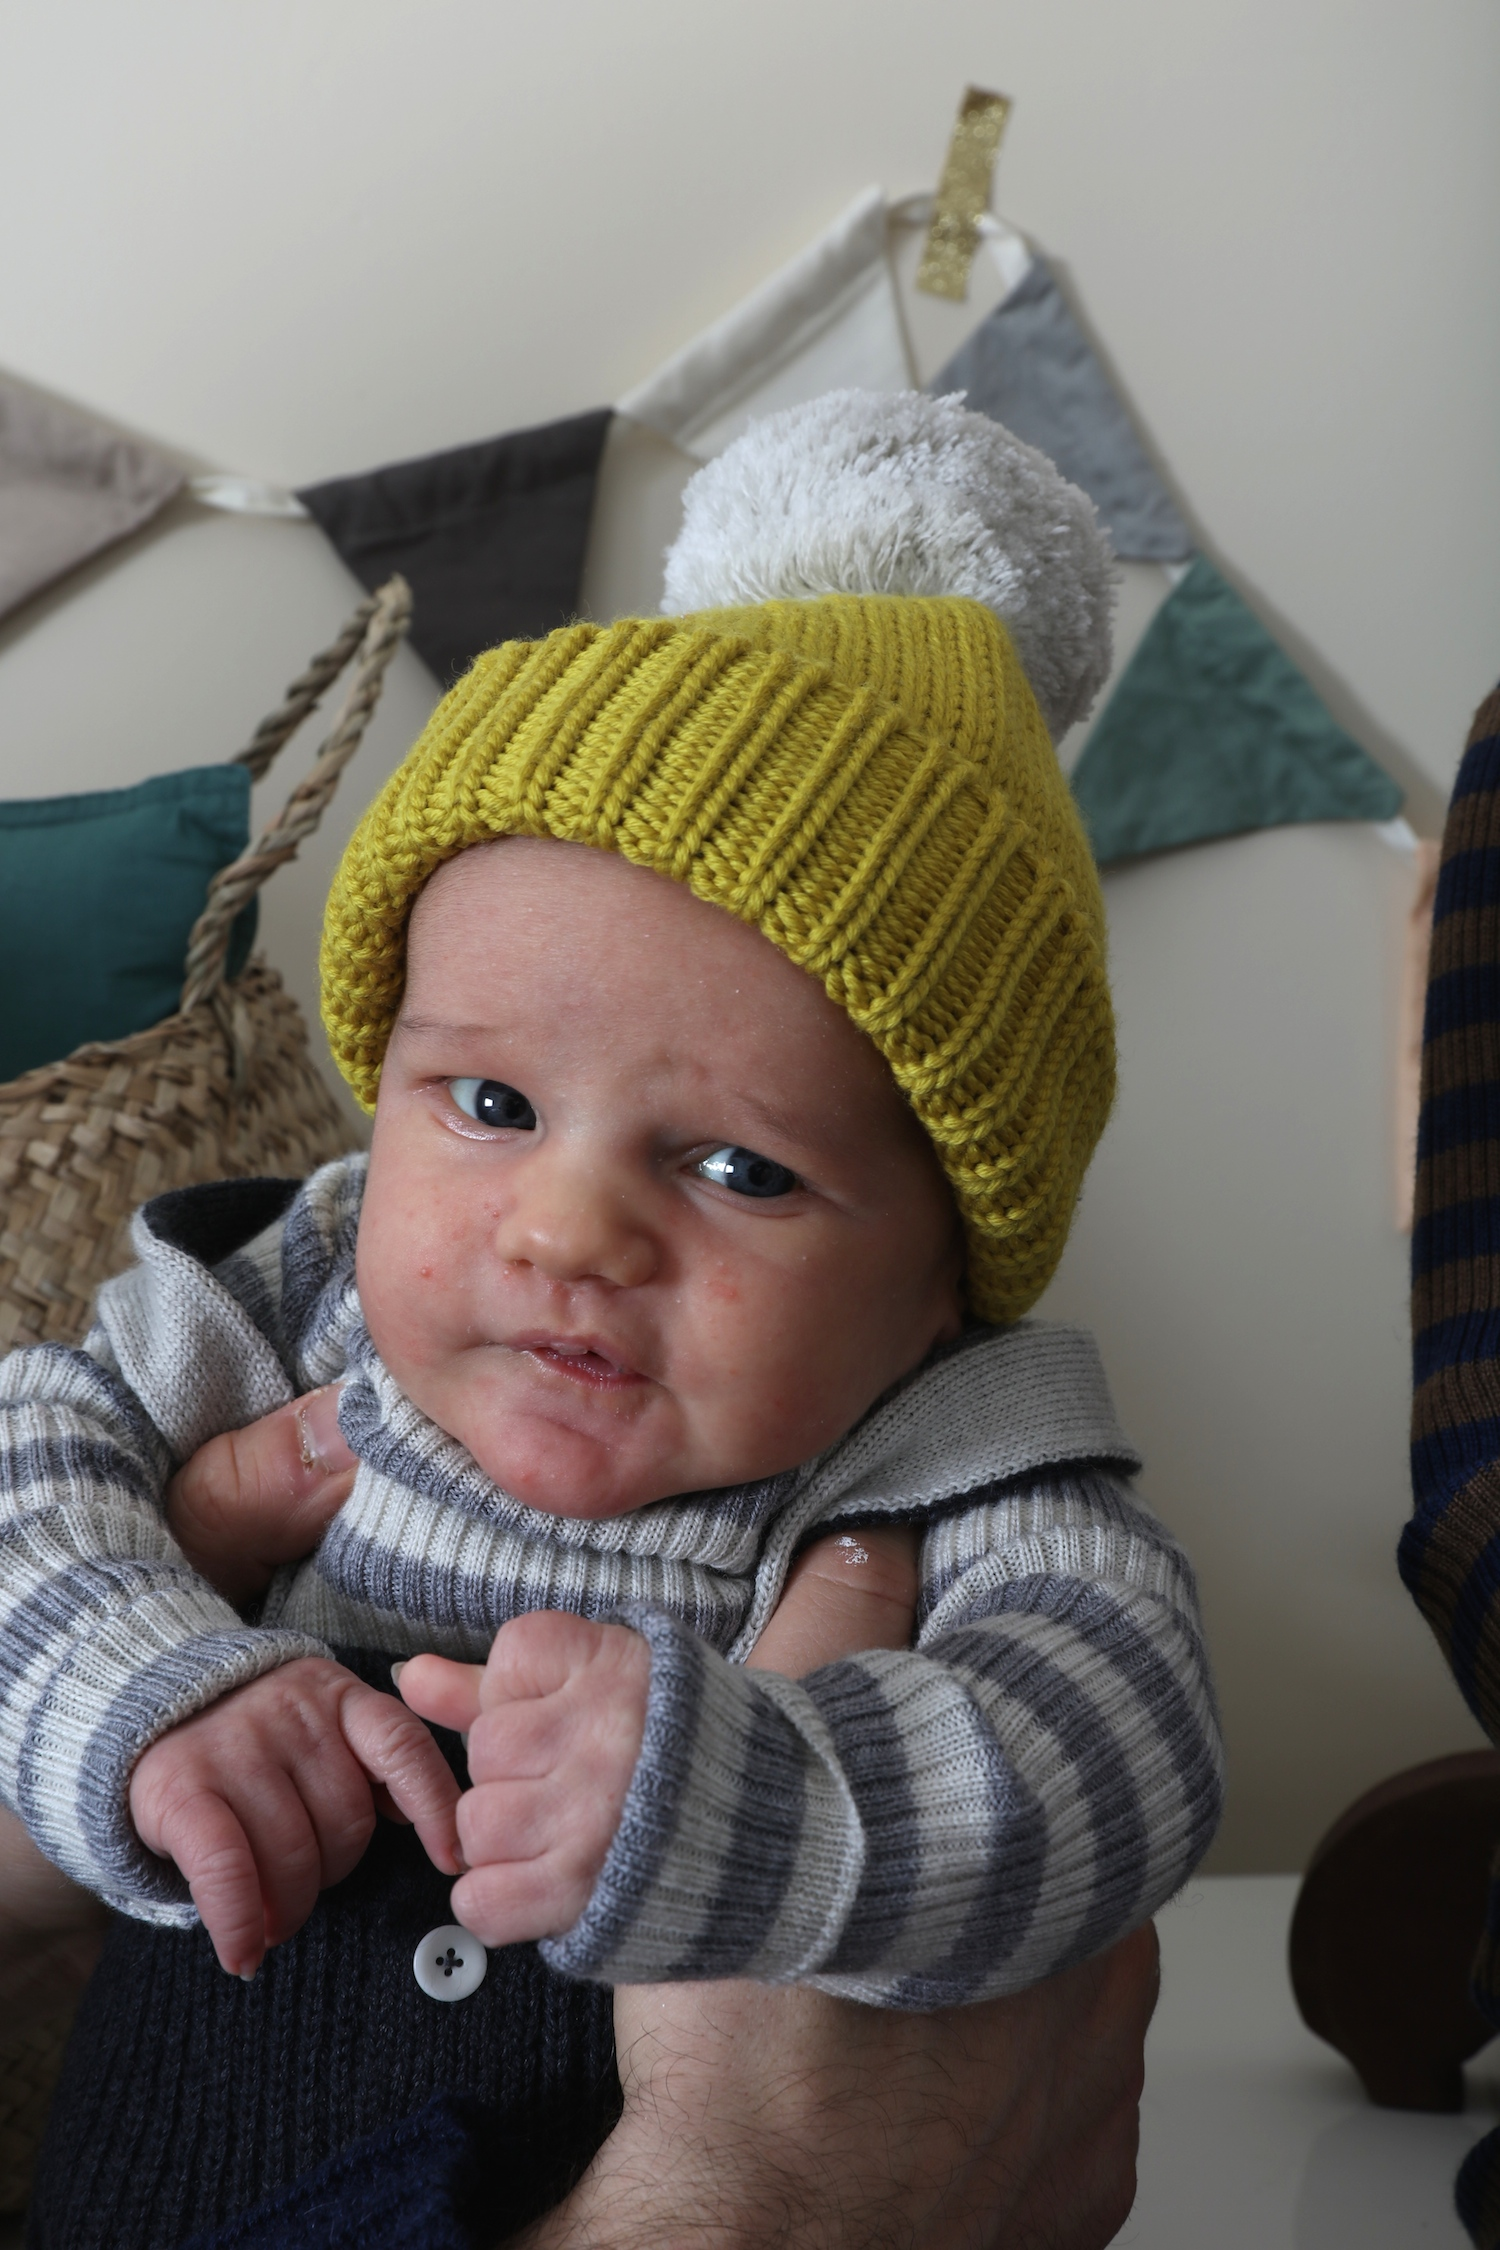 Mabli_knits_knitted_hat_baby